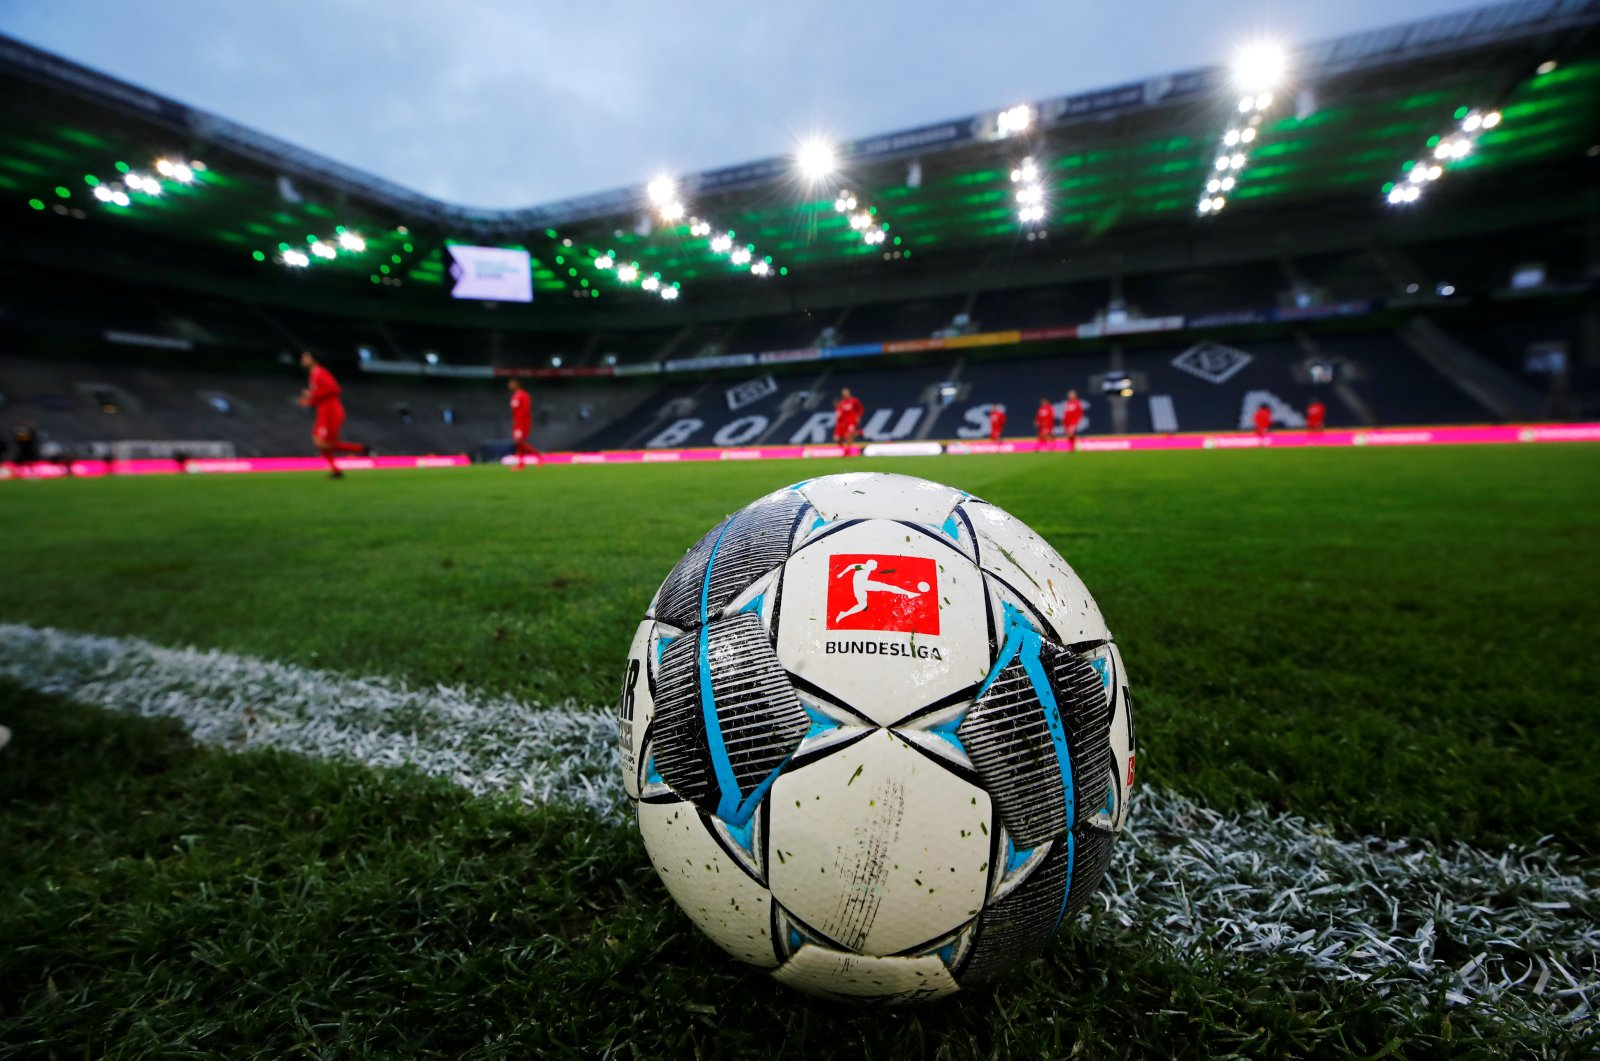 General view of a match ball during the warm up before the match between Borussia Mönchengladbach and FC Cologne, Borussia-Park, Mönchengladbach, Germany, March 11, 2020 (Reuters File Photo)